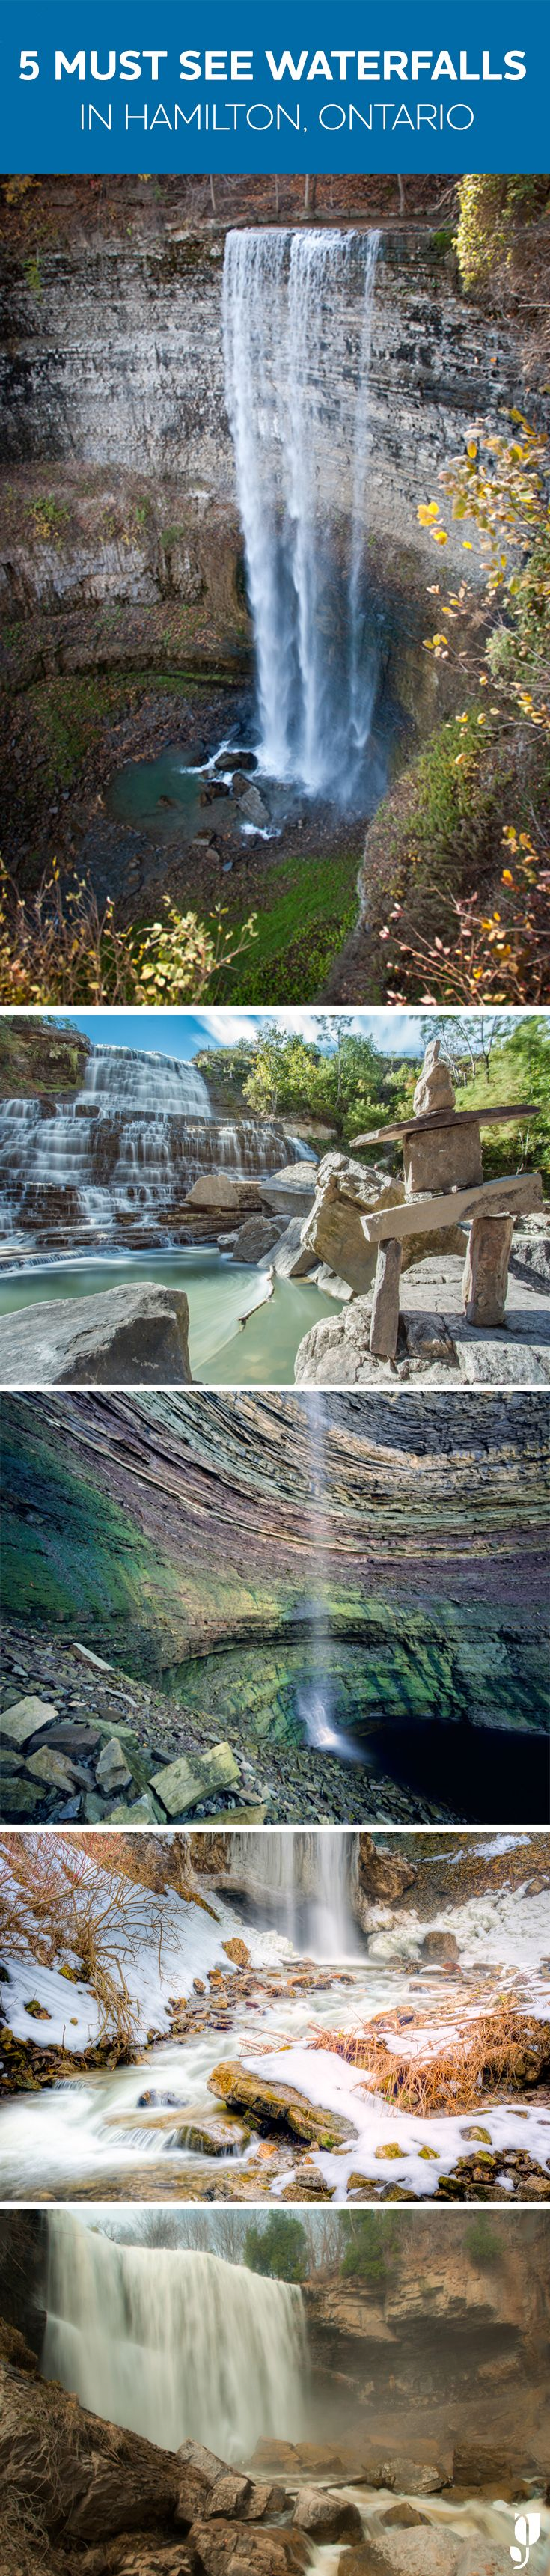 5 must-see waterfalls in Hamilton, Ontario